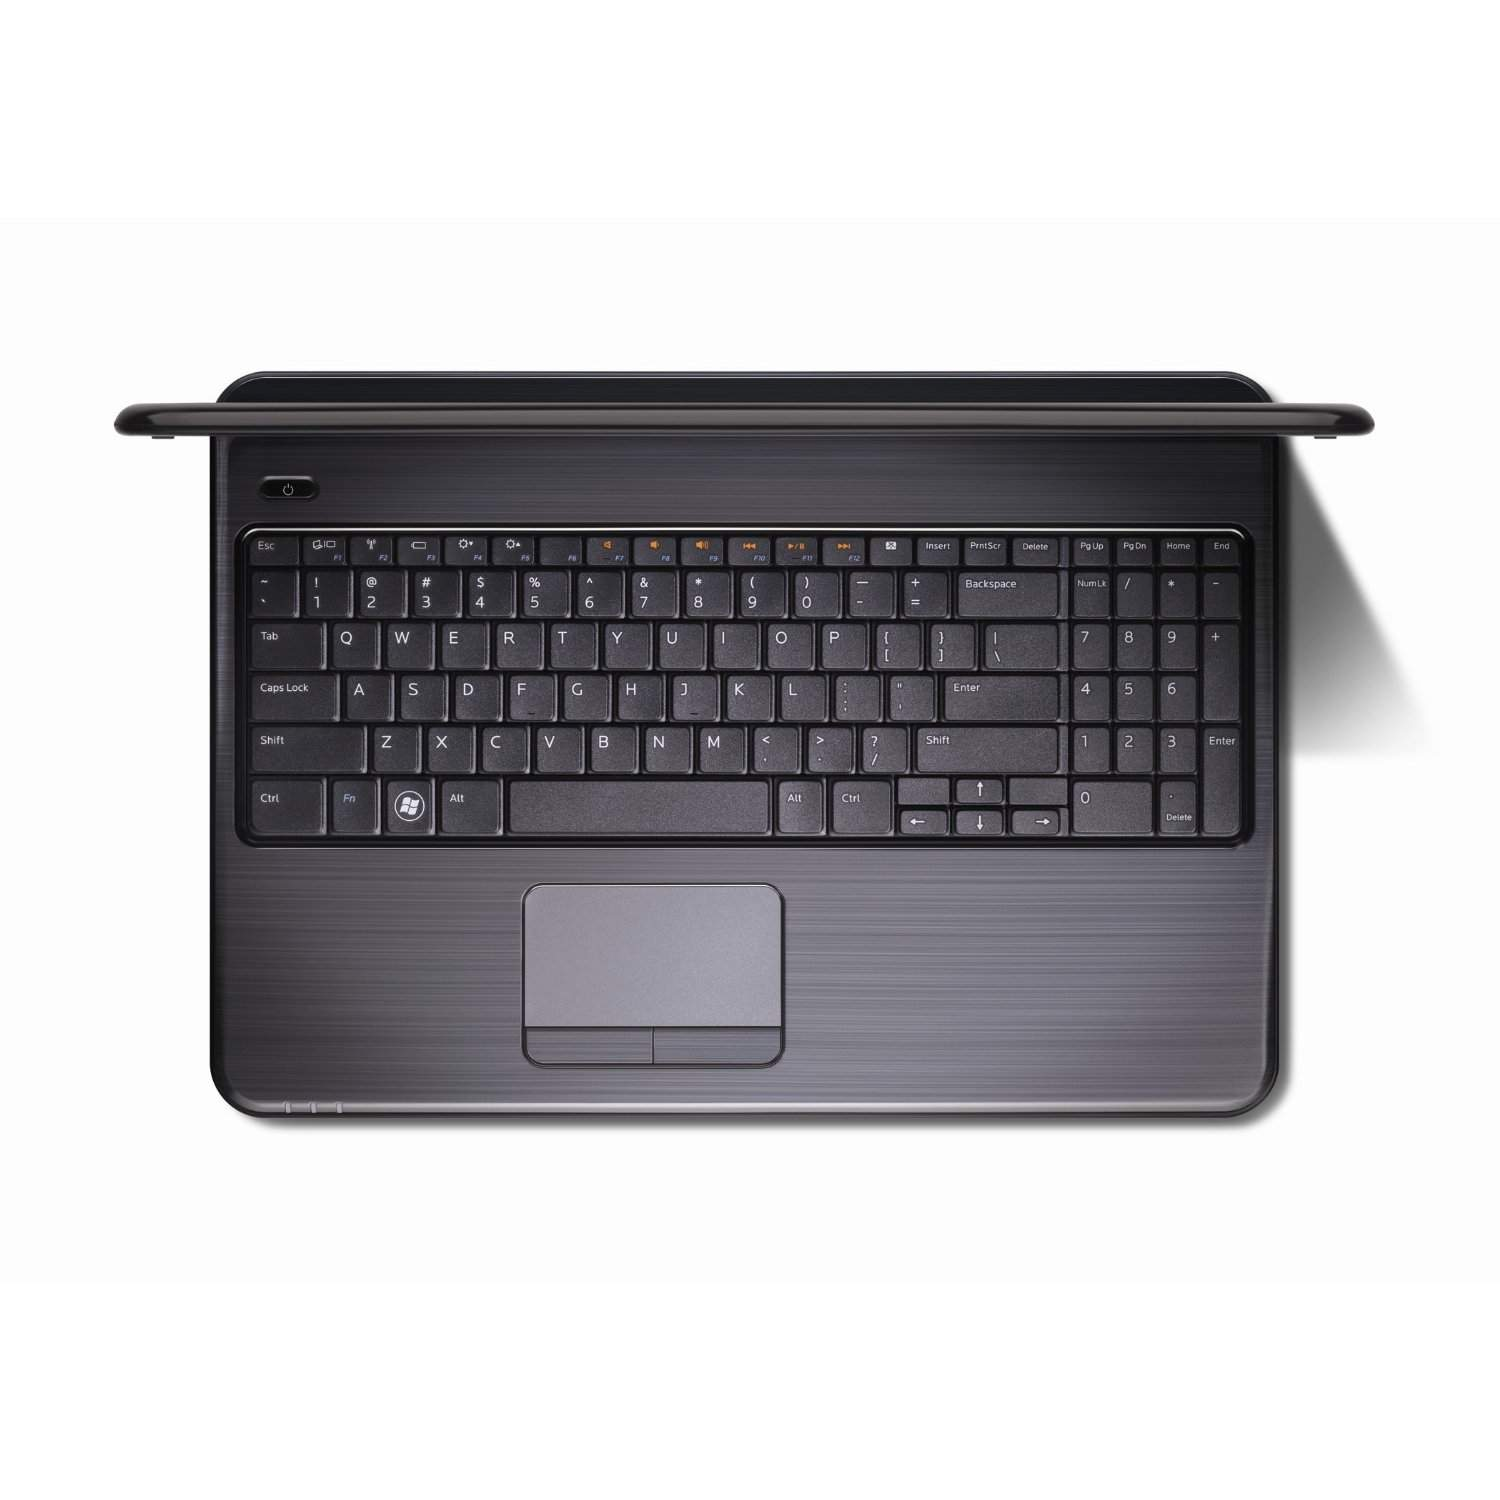 Dell Inspiron 15R Special Edition